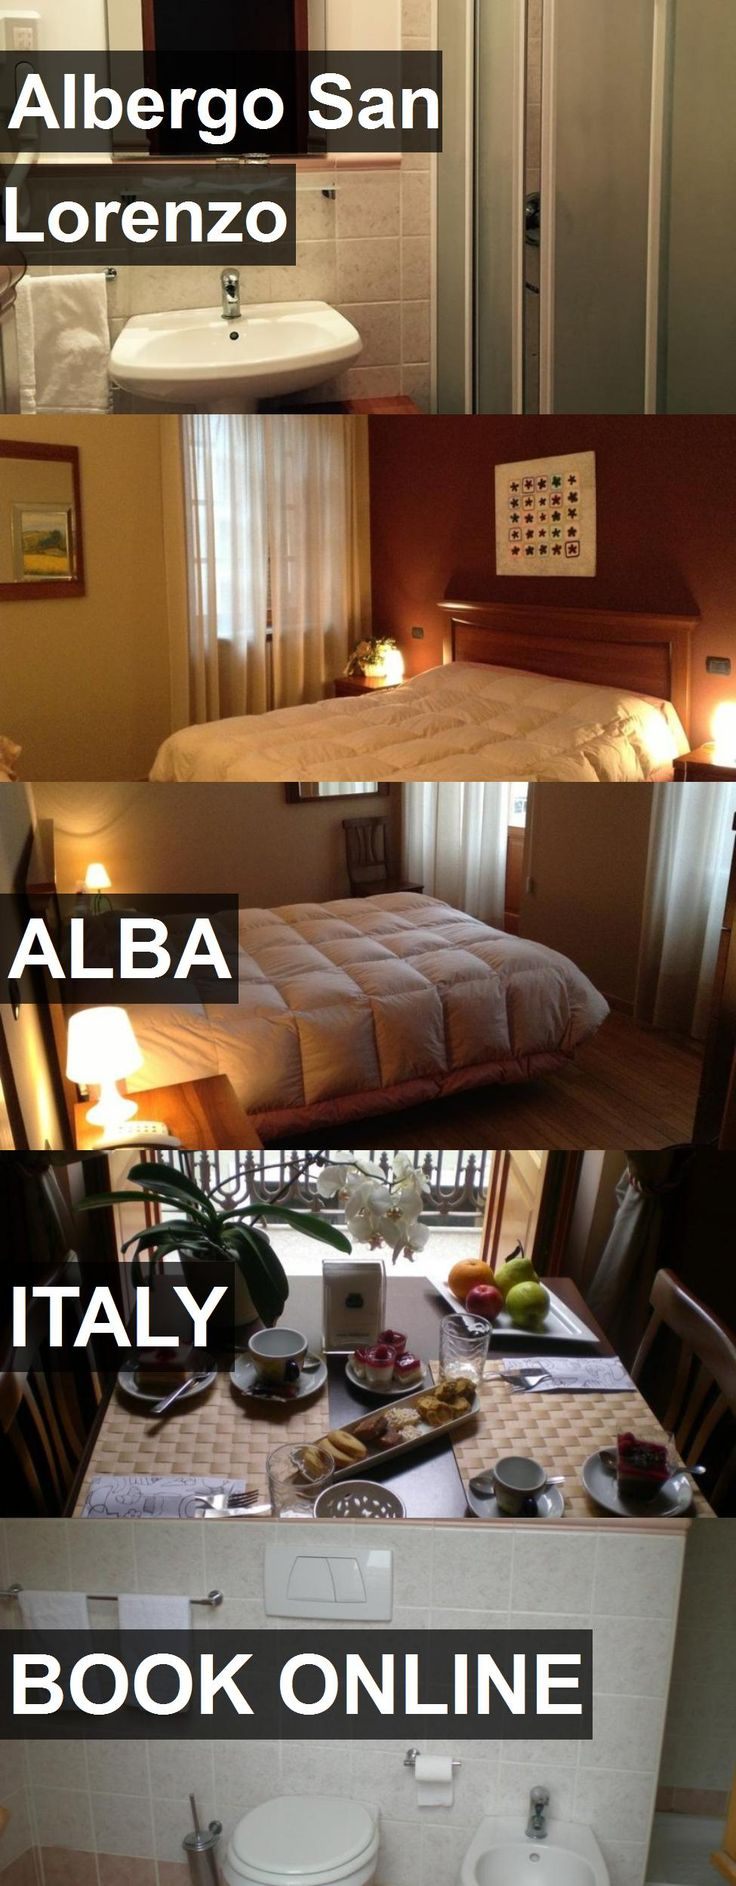 Hotel Albergo San Lorenzo in Alba, Italy. For more information, photos, reviews and best prices please follow the link. #Italy #Alba #AlbergoSanLorenzo #hotel #travel #vacation